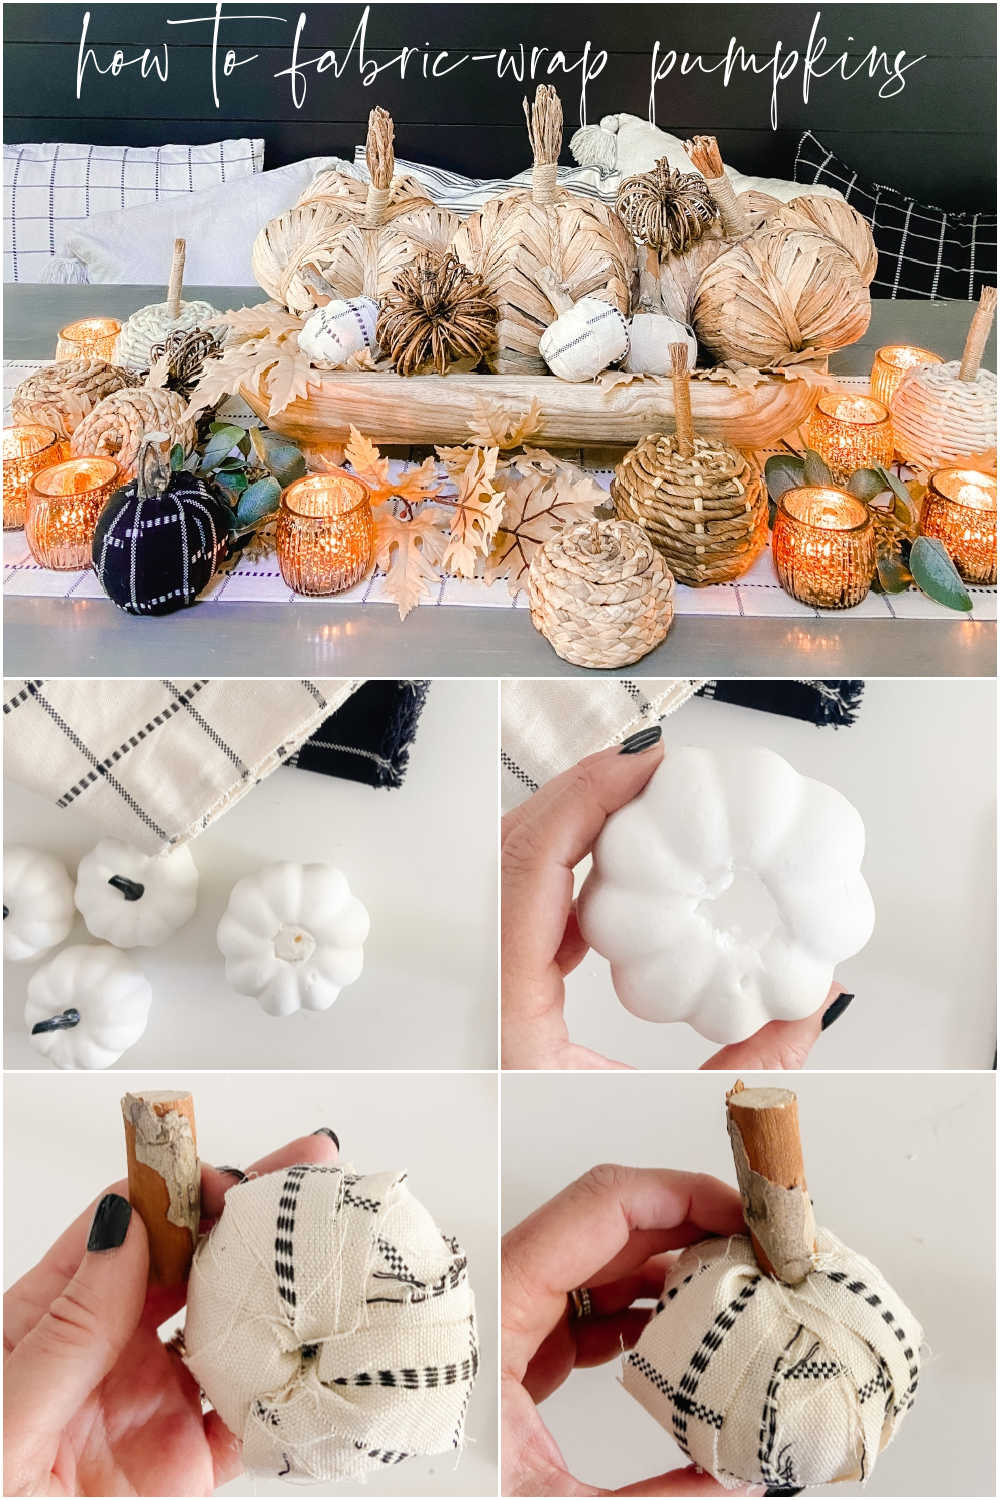 Boho Cottage Fall Tablescape. Create a warm and inviting table by making a DIY table runner, pillows and a beautiful footed bowl centerpiece filled with textured, fabric-covered pumpkins and leaves.